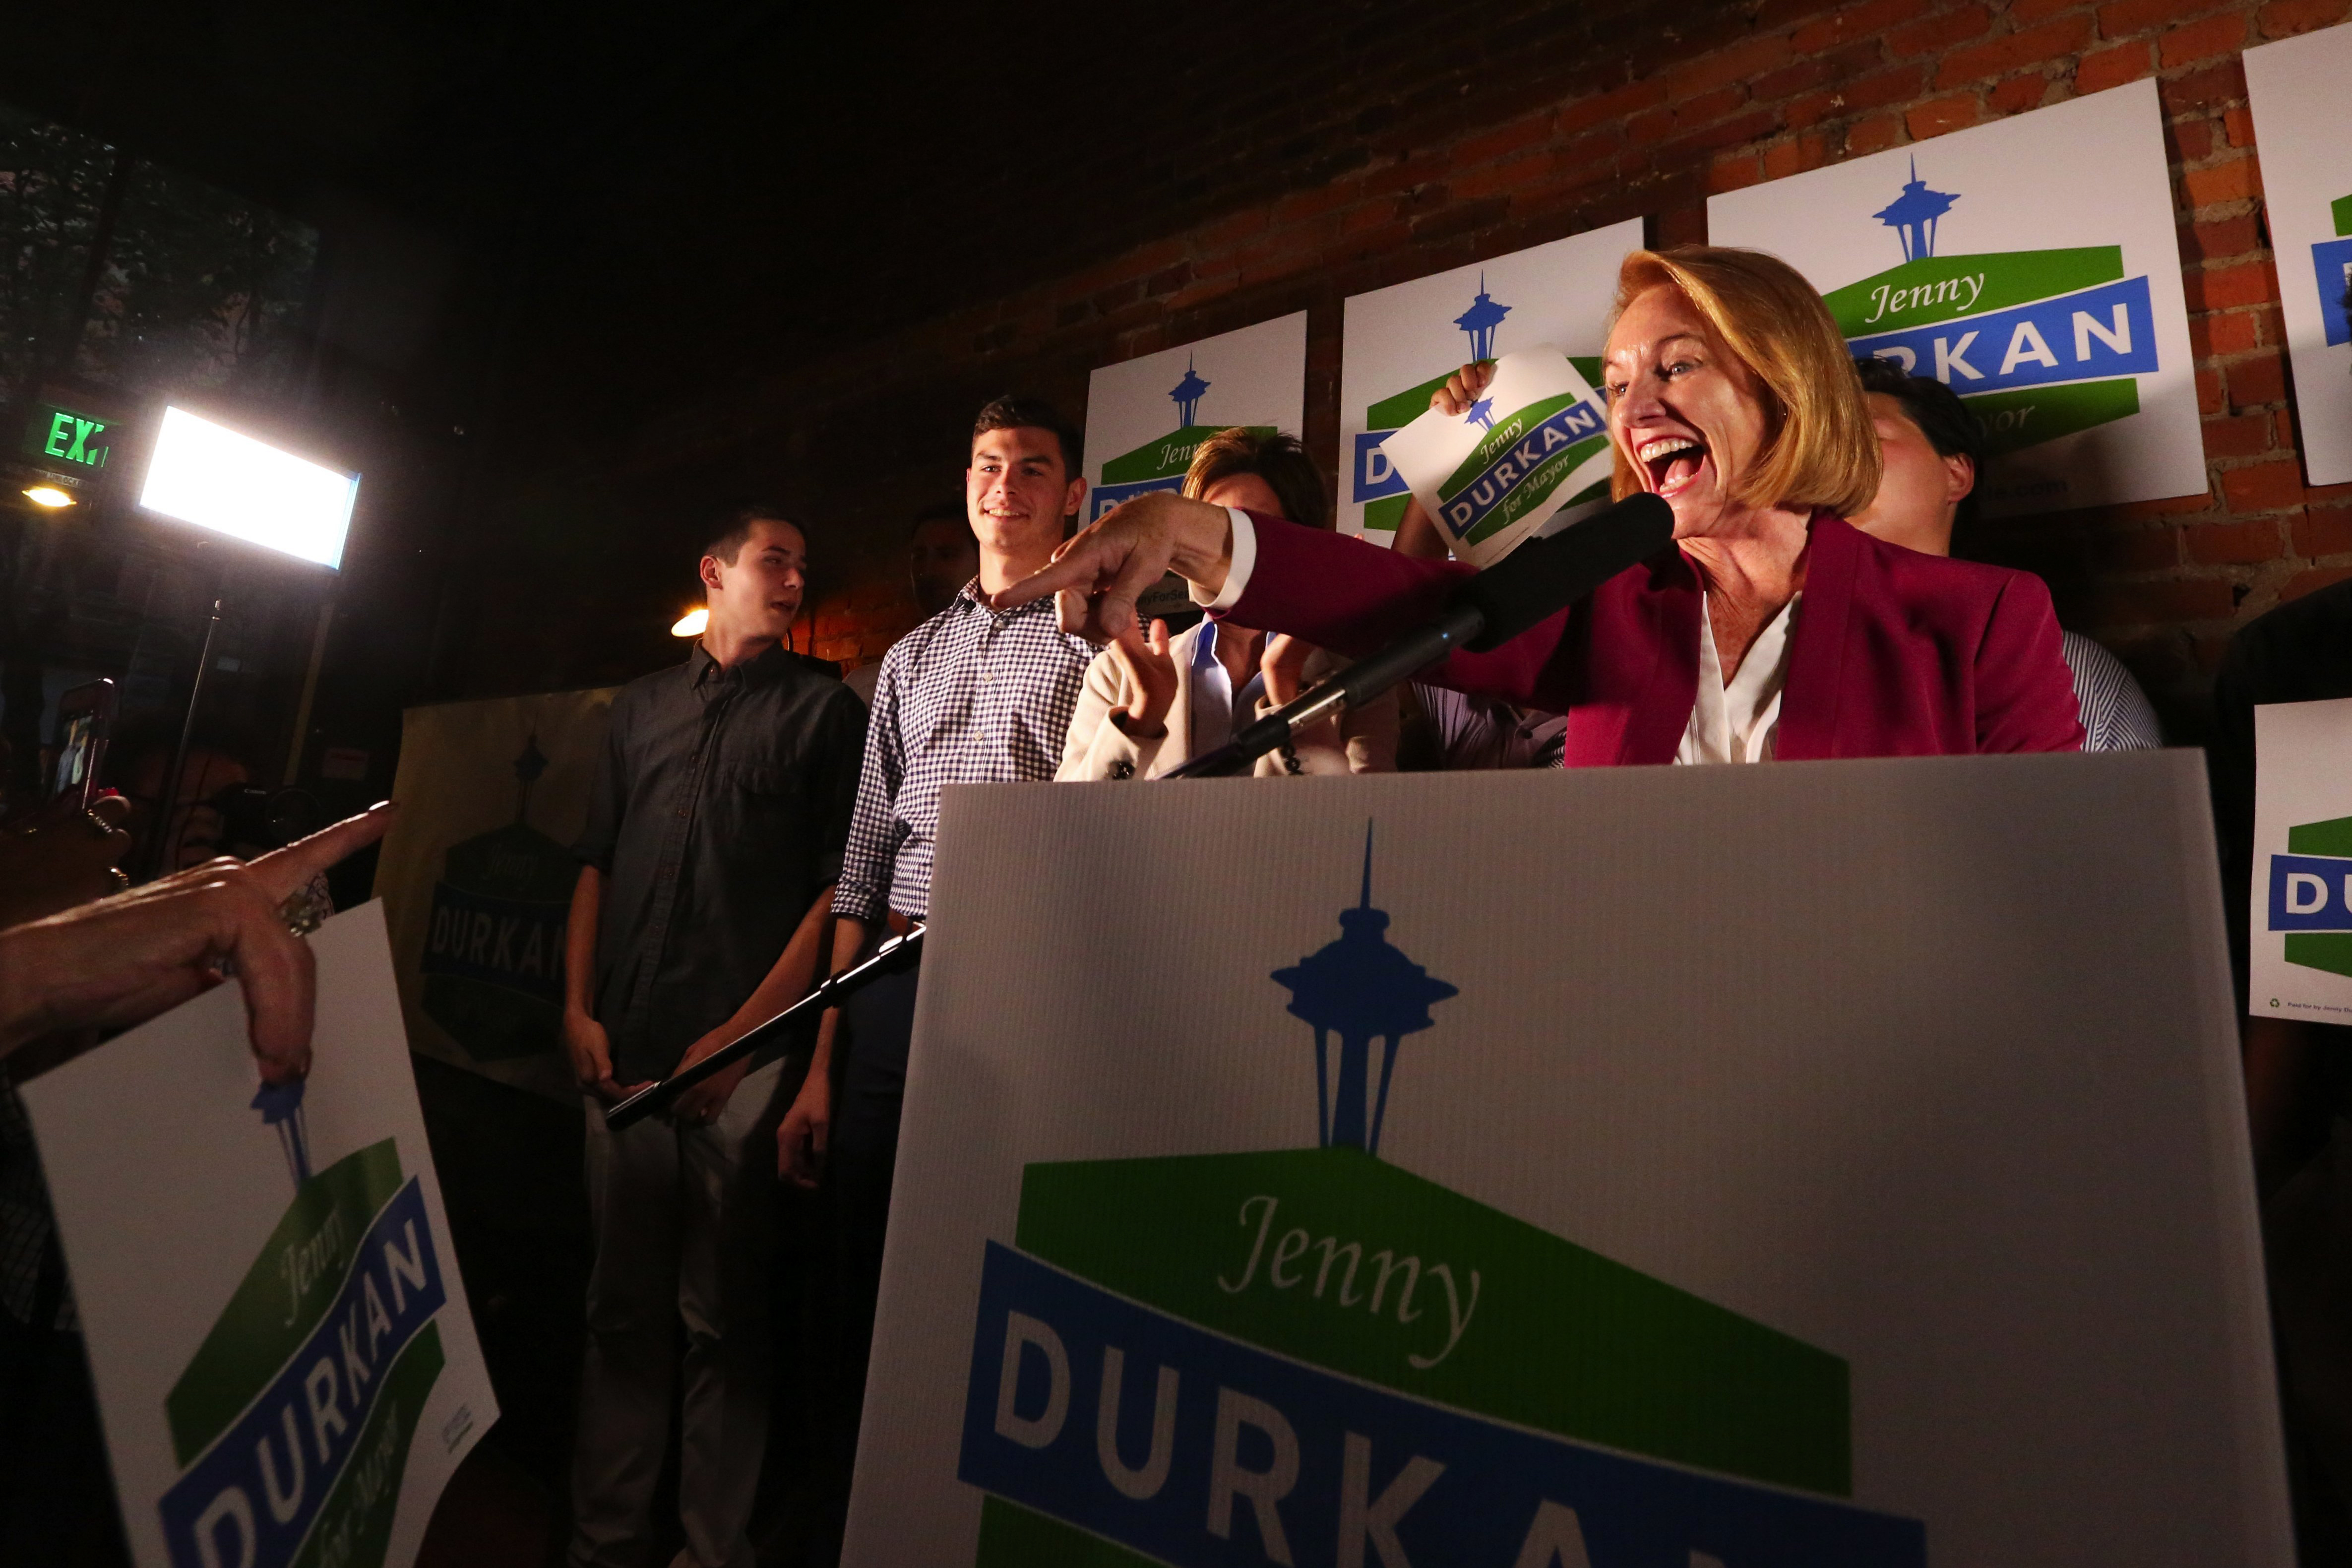 Seattle Mayoral candidate Jenny Durakn speaks at a podium at a political rally.